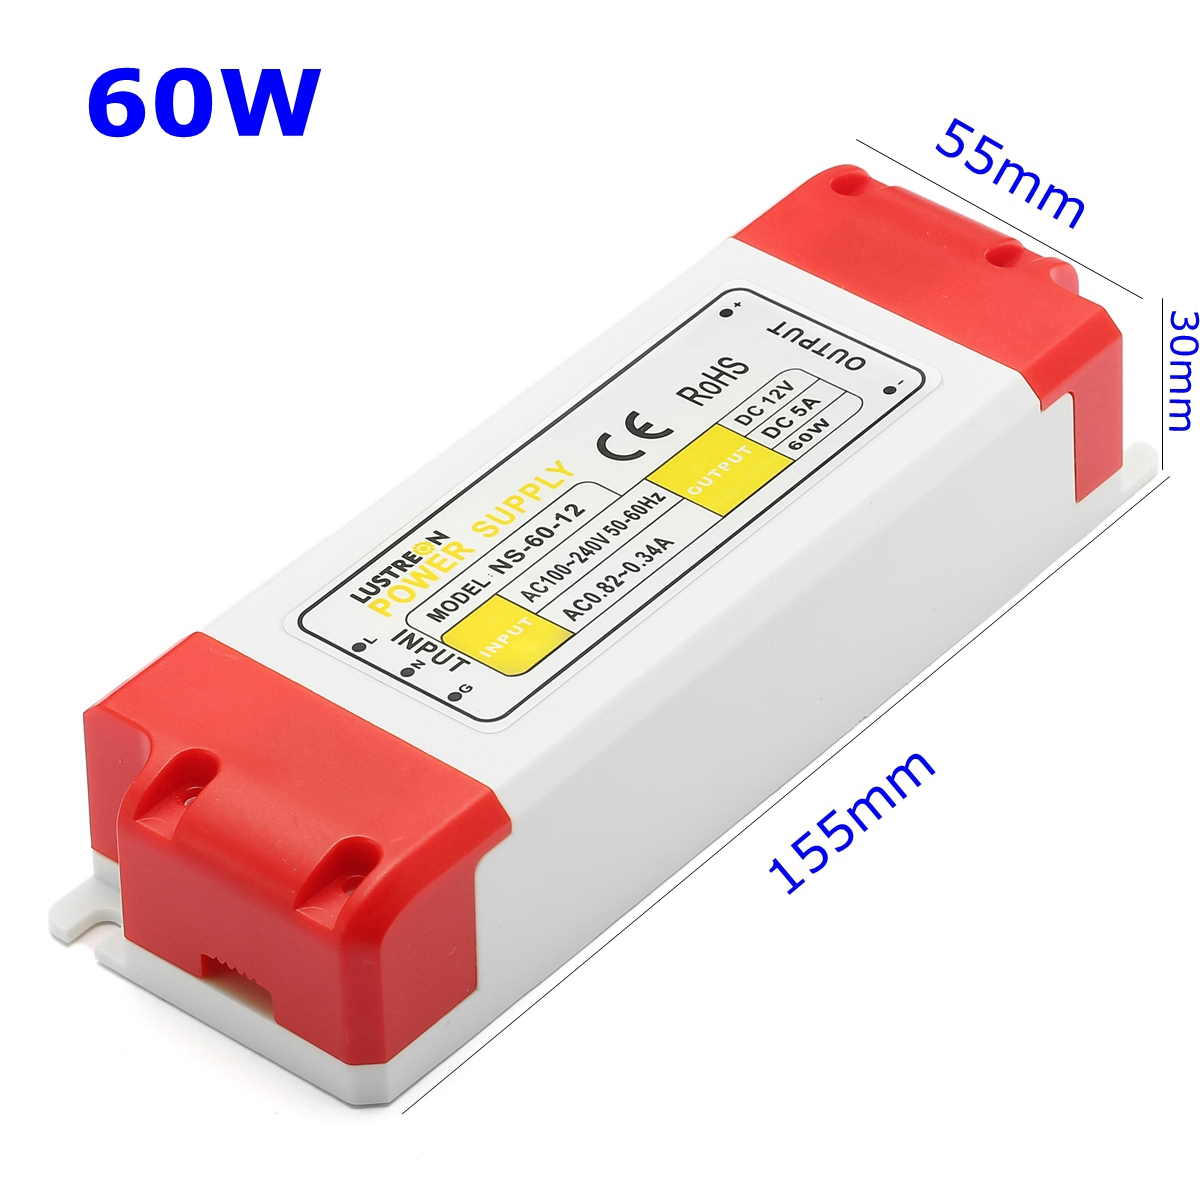 LUSTREON 12W 24W 36W 48W 60W AC100-240V to DC12V LED Driver Power Supply Adapter Transformer